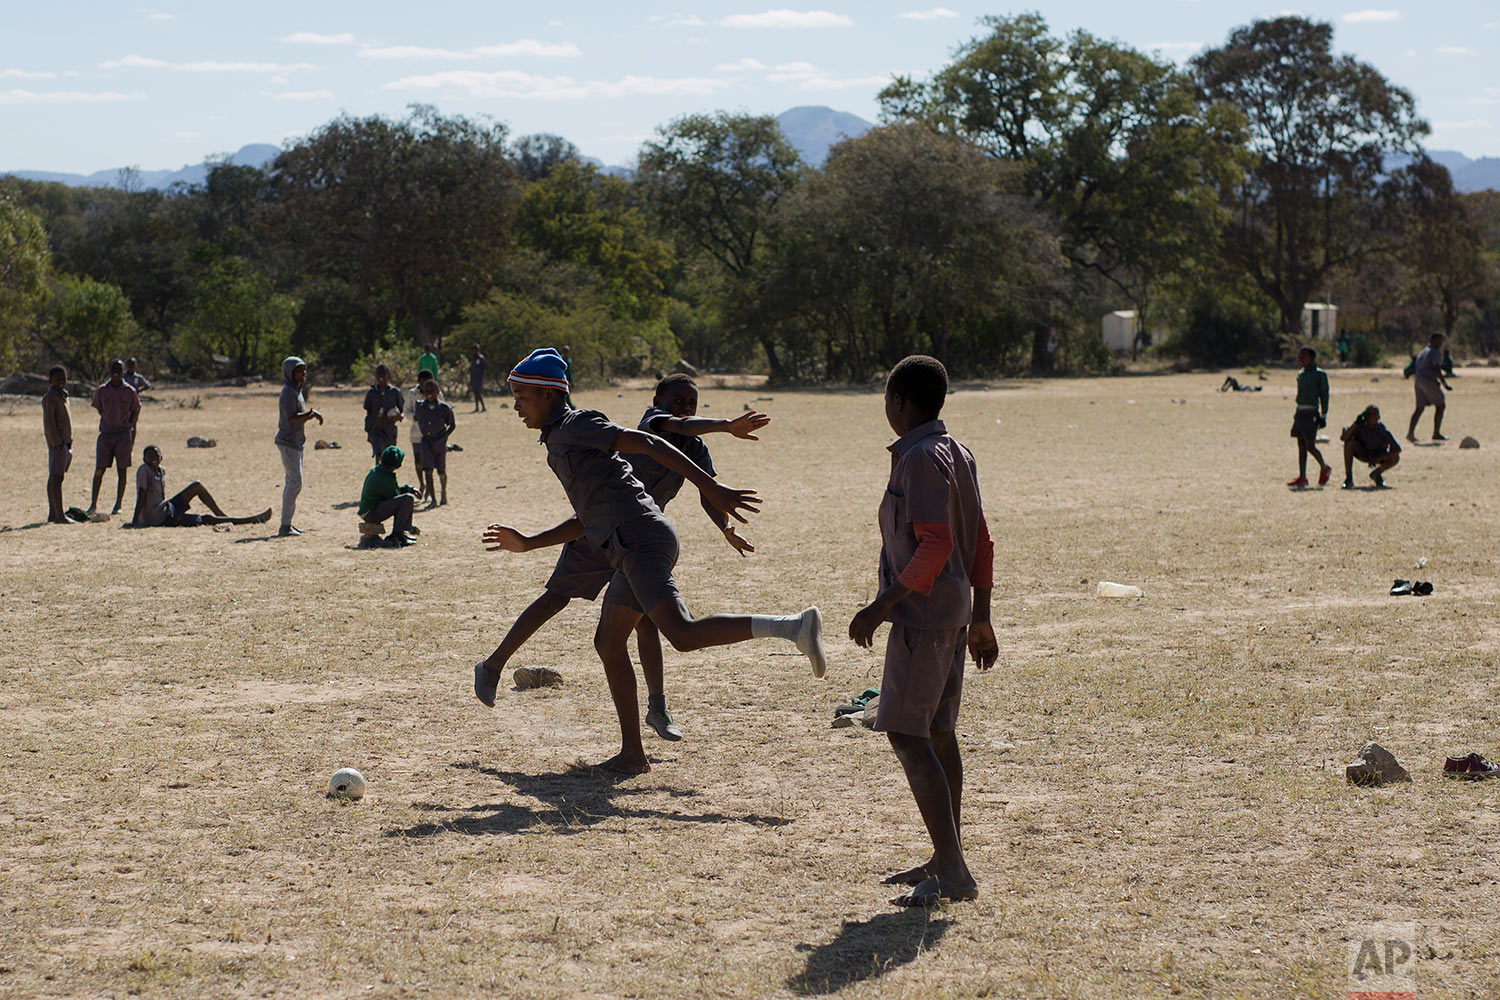 School children play football in the school playground in Simbumbumbu, Zimbabwe, the very place where Ellis Ndlovu's son Edwel was killed 34 years ago by Zimbabwe army soldiers in what many called the Matabeleland Massacres, or Gukurahundi. (AP Photo/Jerome Delay)